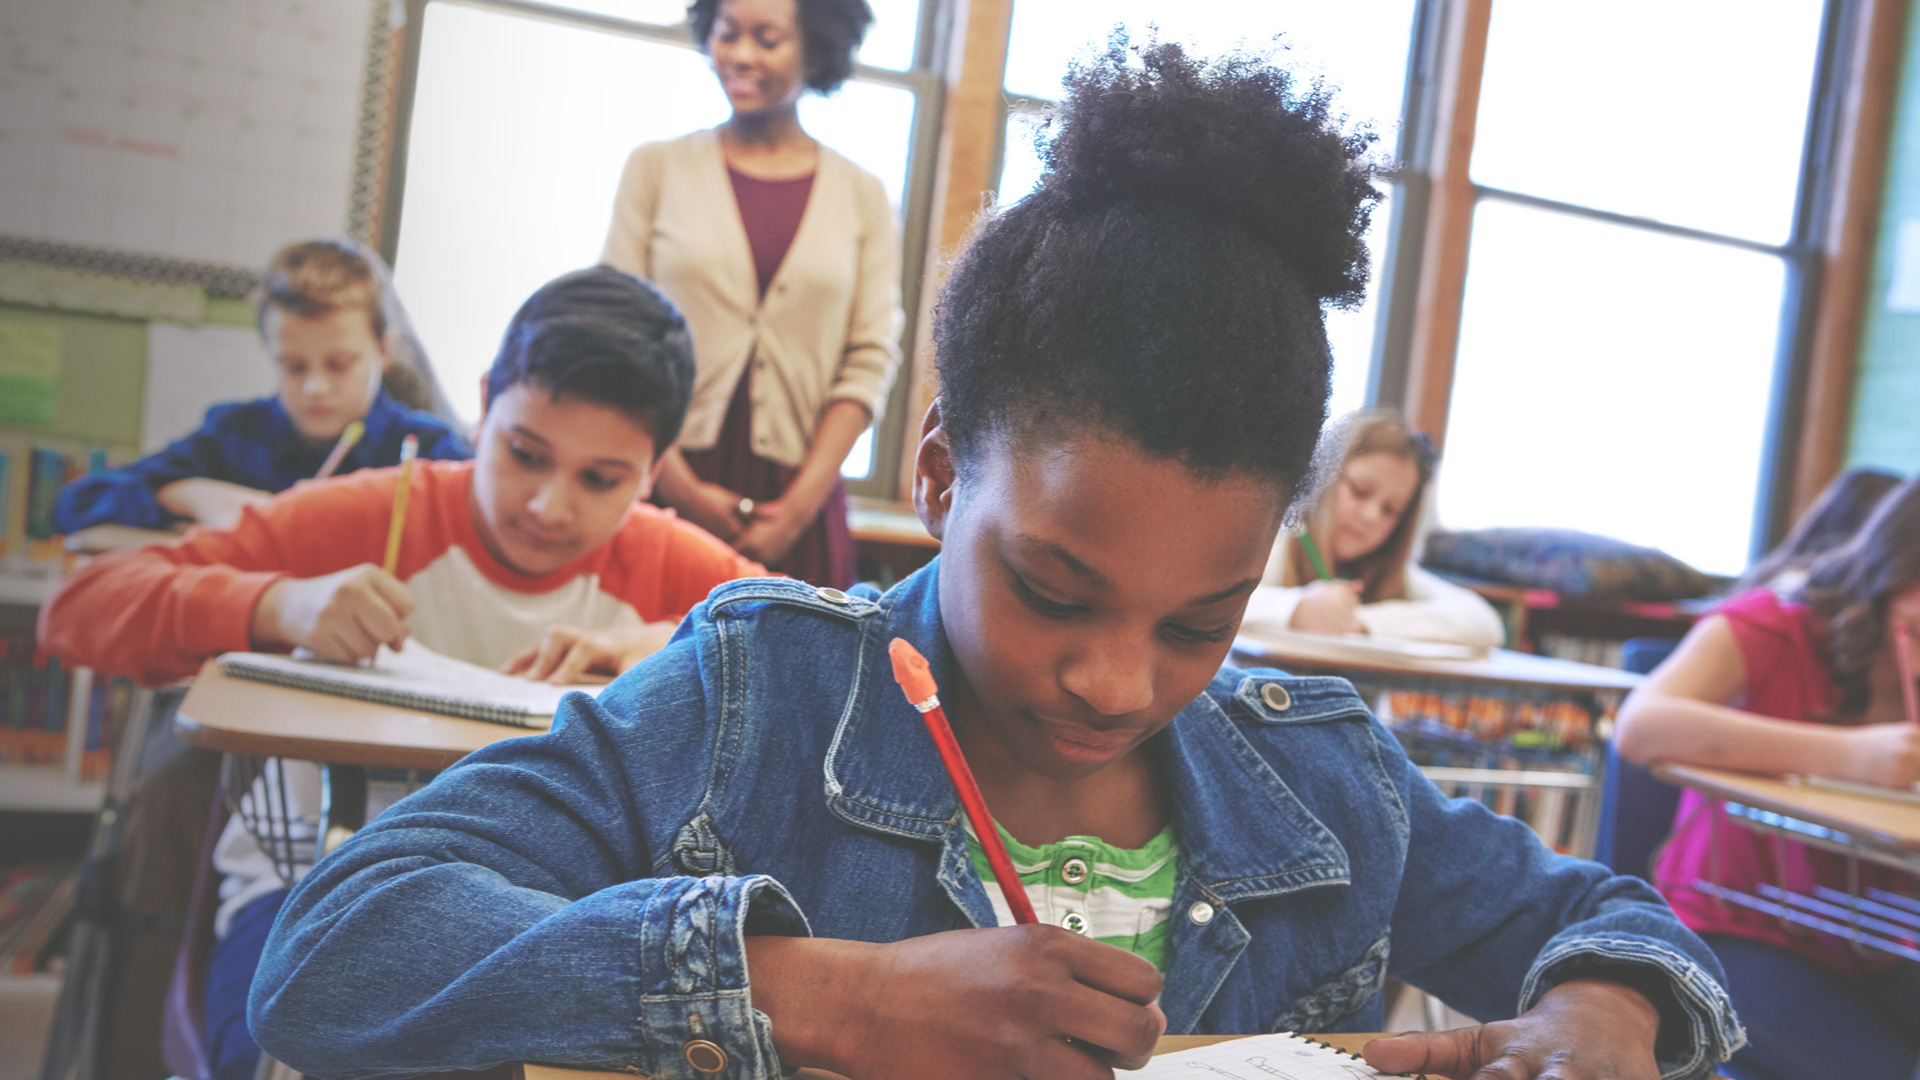 Girl taking a test in class